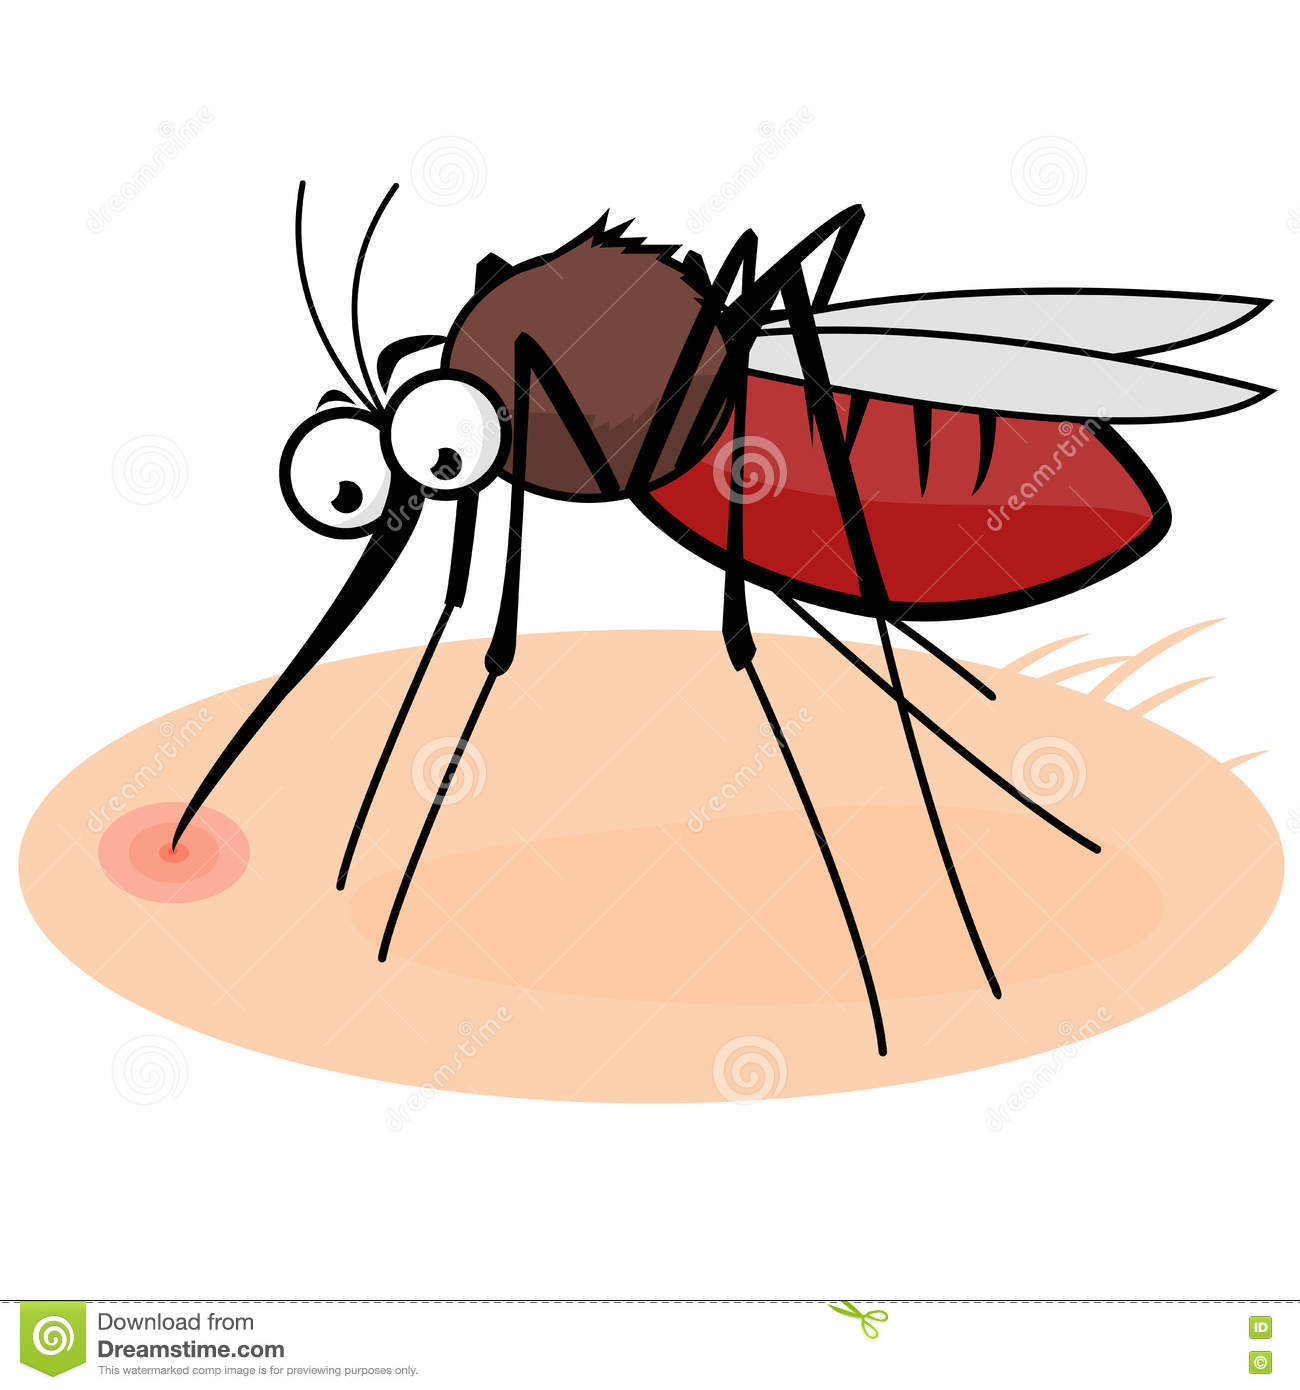 Human pencil and in. Mosquito clipart